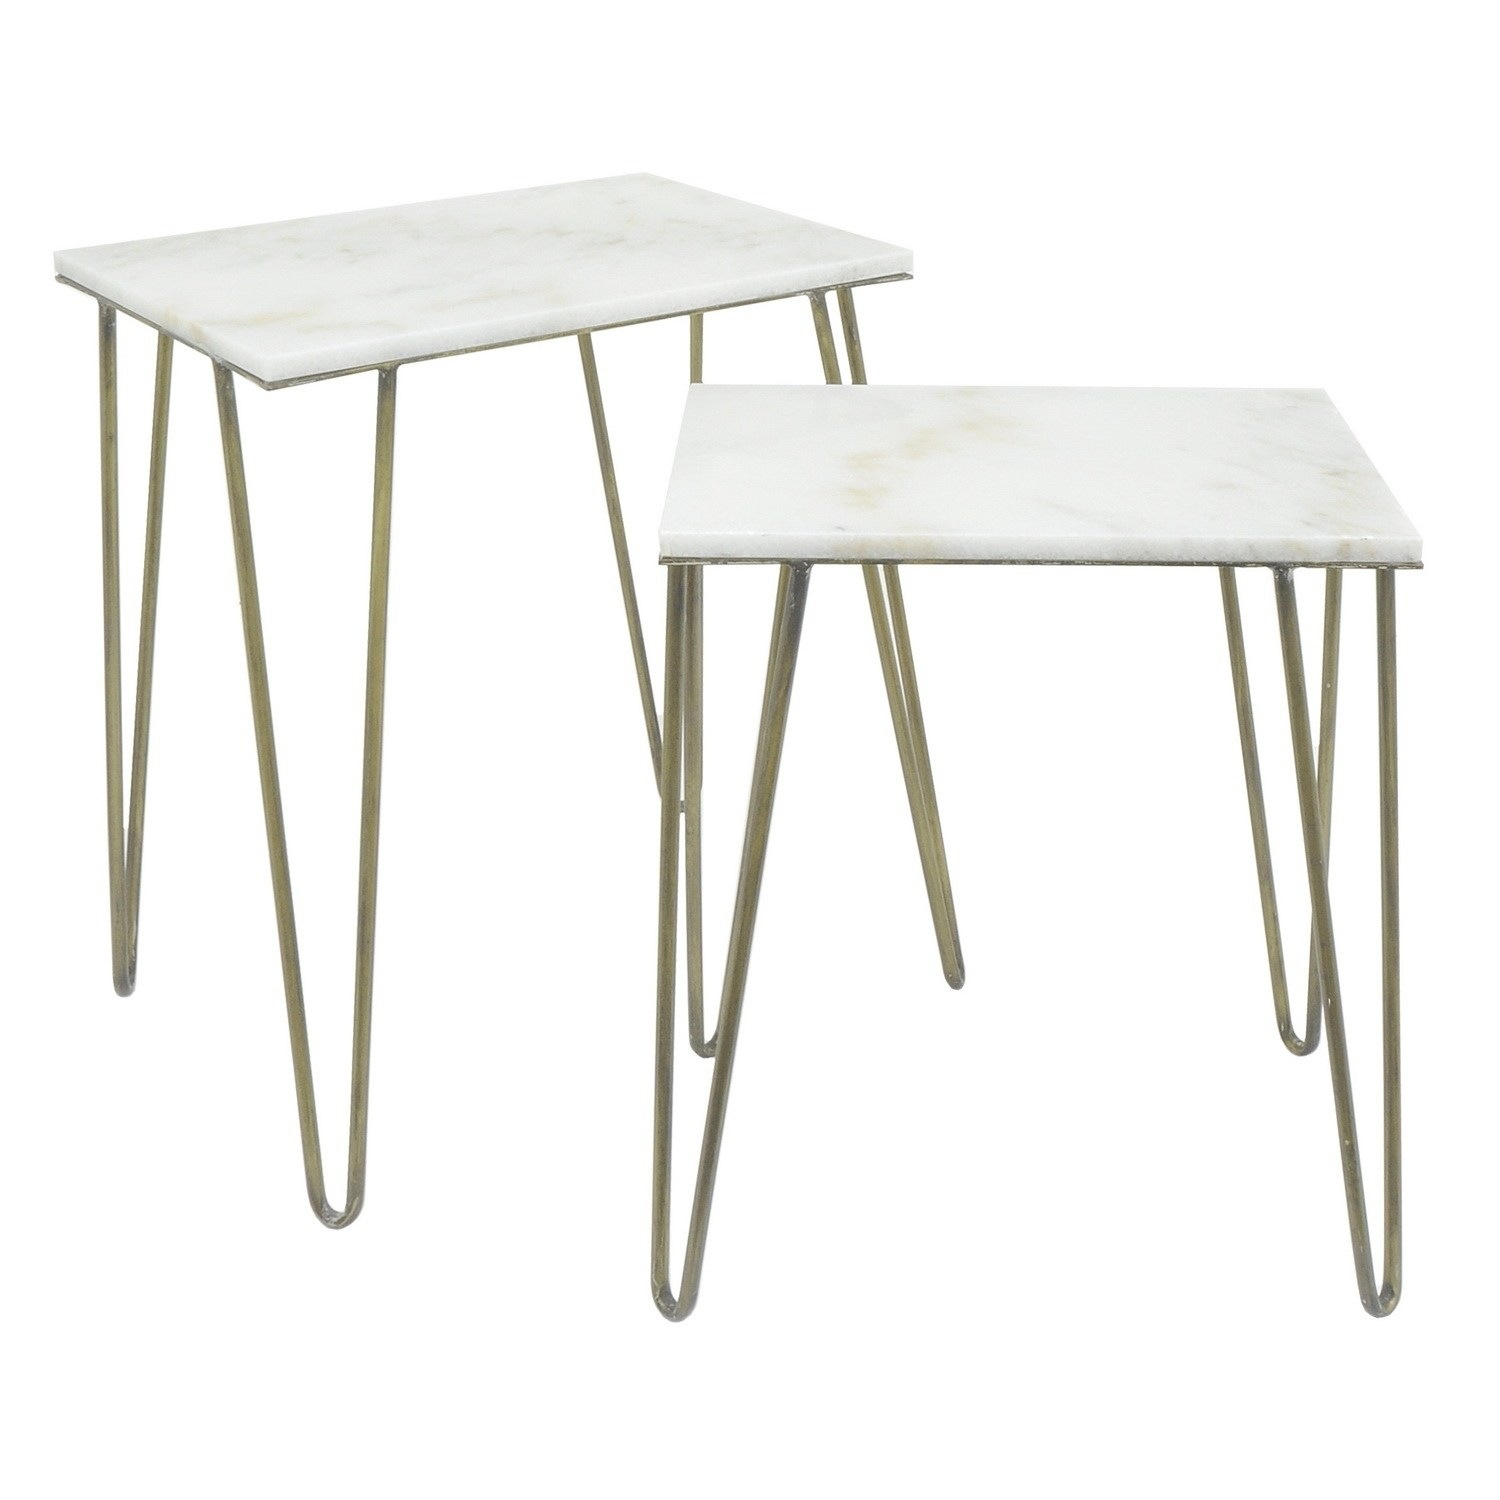 three hands white metal marble top accent table set free shipping today pier one side french console ikea kids bedroom storage decorative accessories for dining room skinny couch